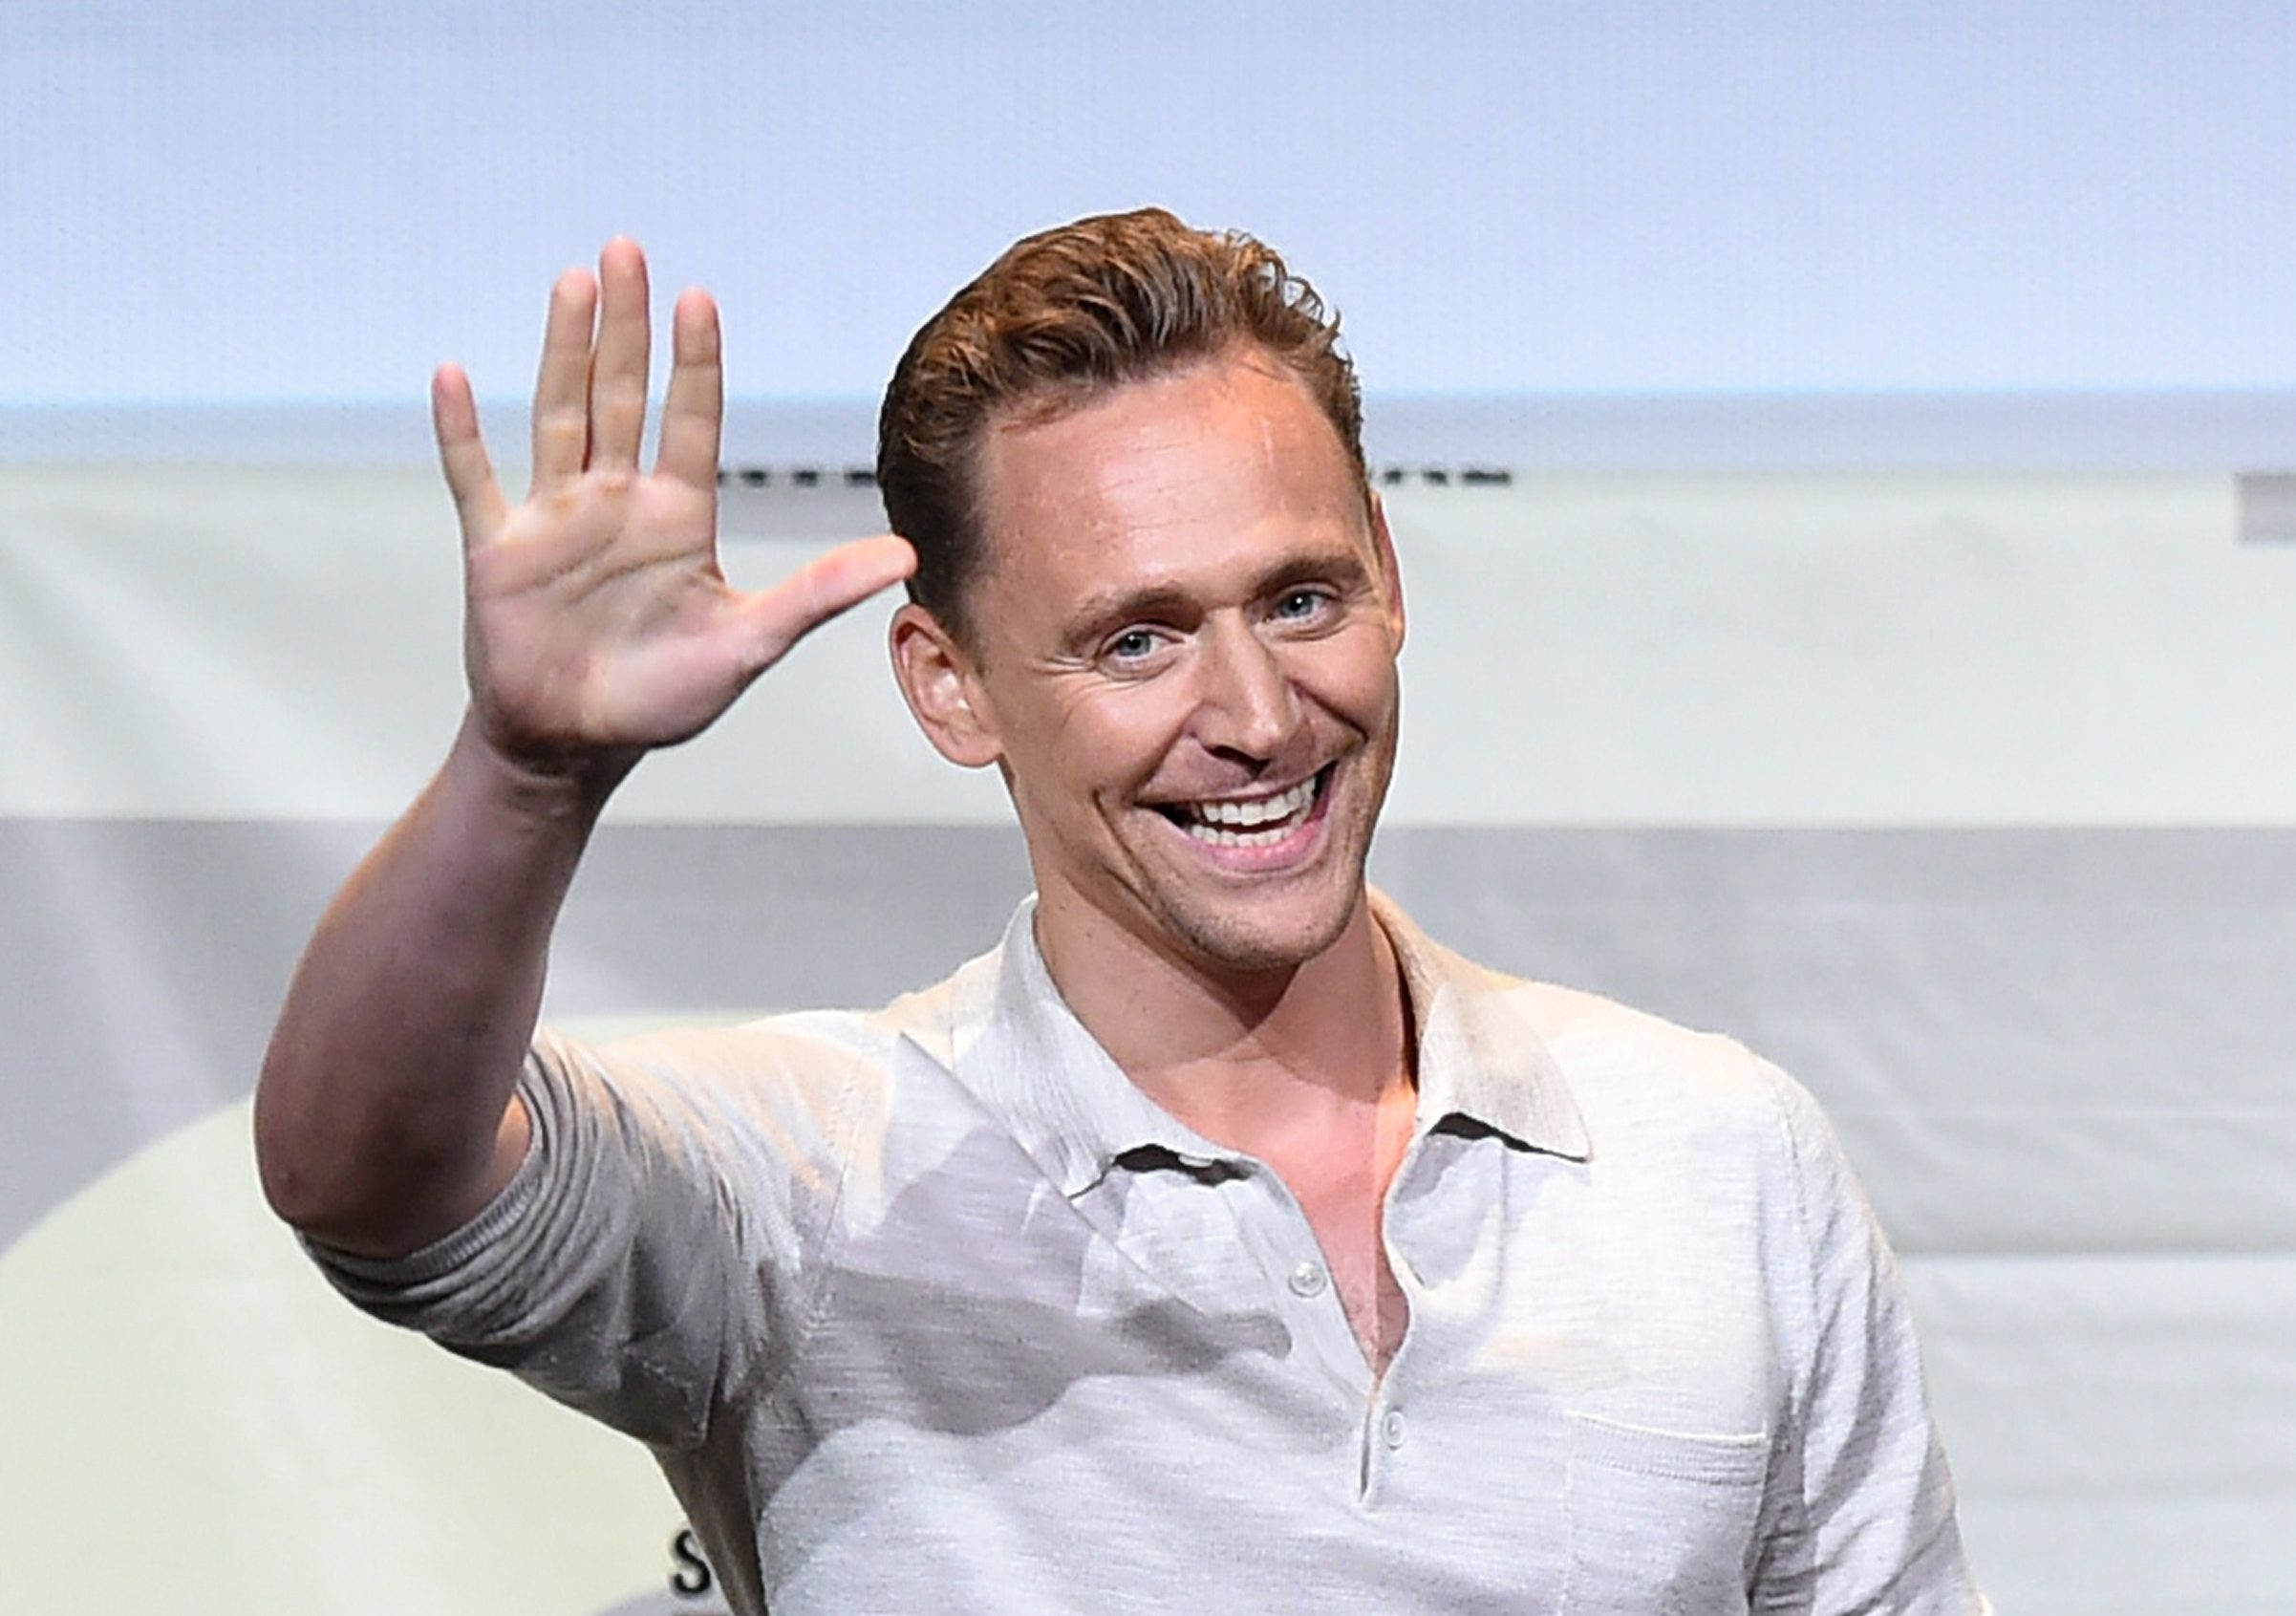 Did Mark Gatiss just drop a huge hint that Tom Hiddleston is going to be in Sherlock series 4?